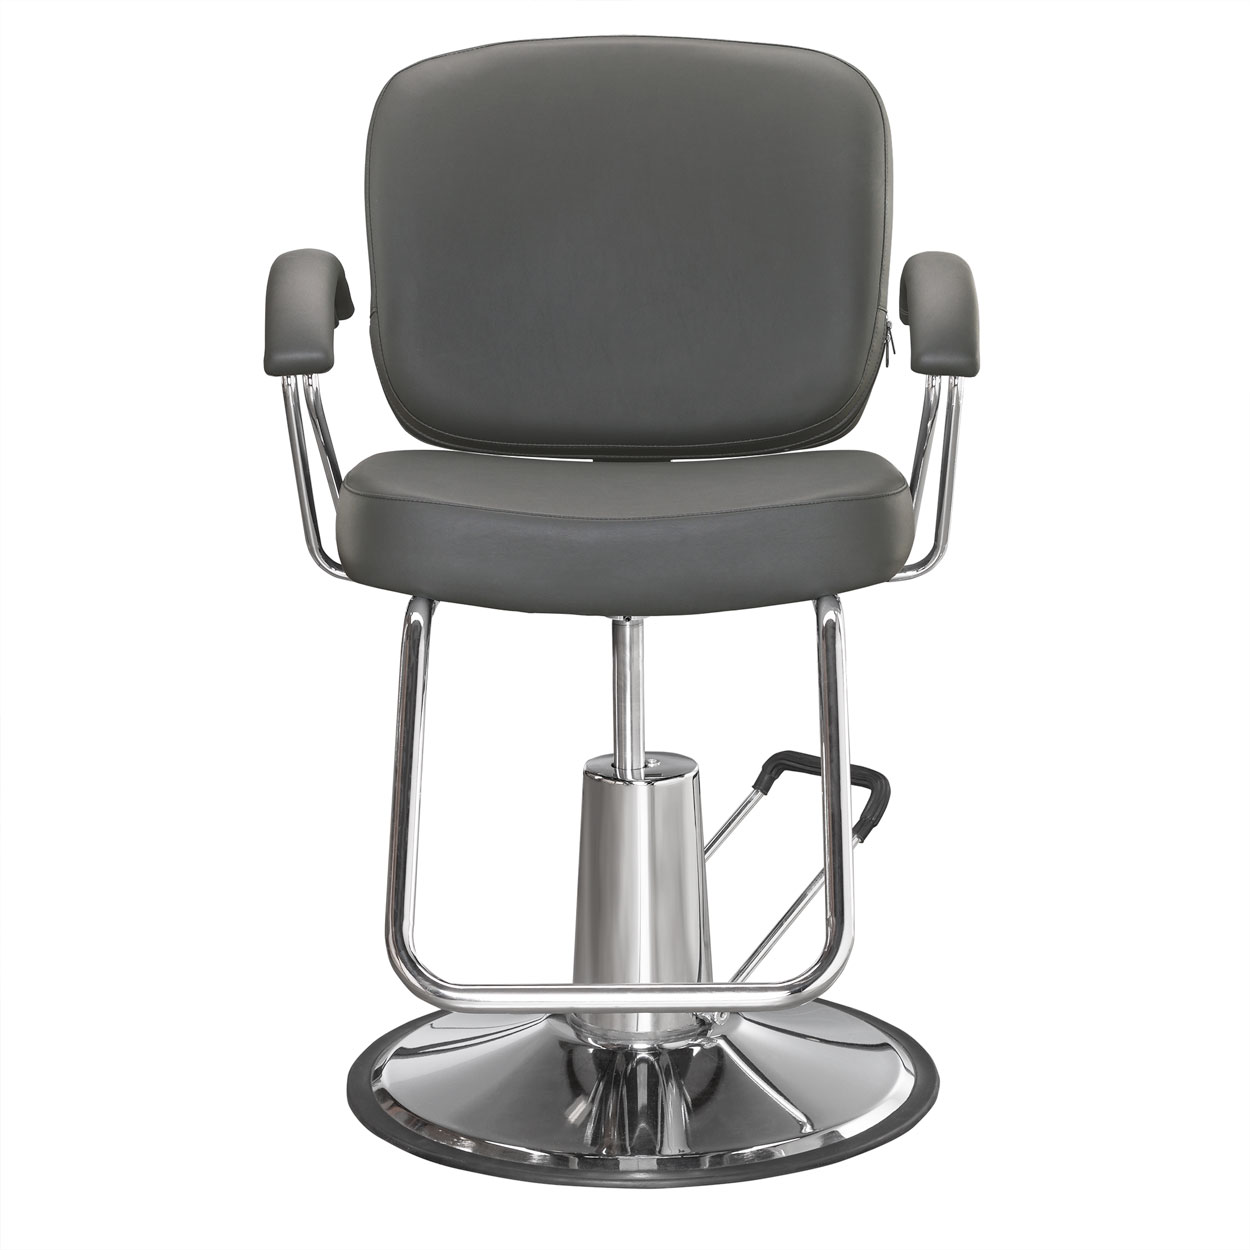 Pibbs 5906 Samantha Hair Salon Chair with Padded Arms alternative product image 1